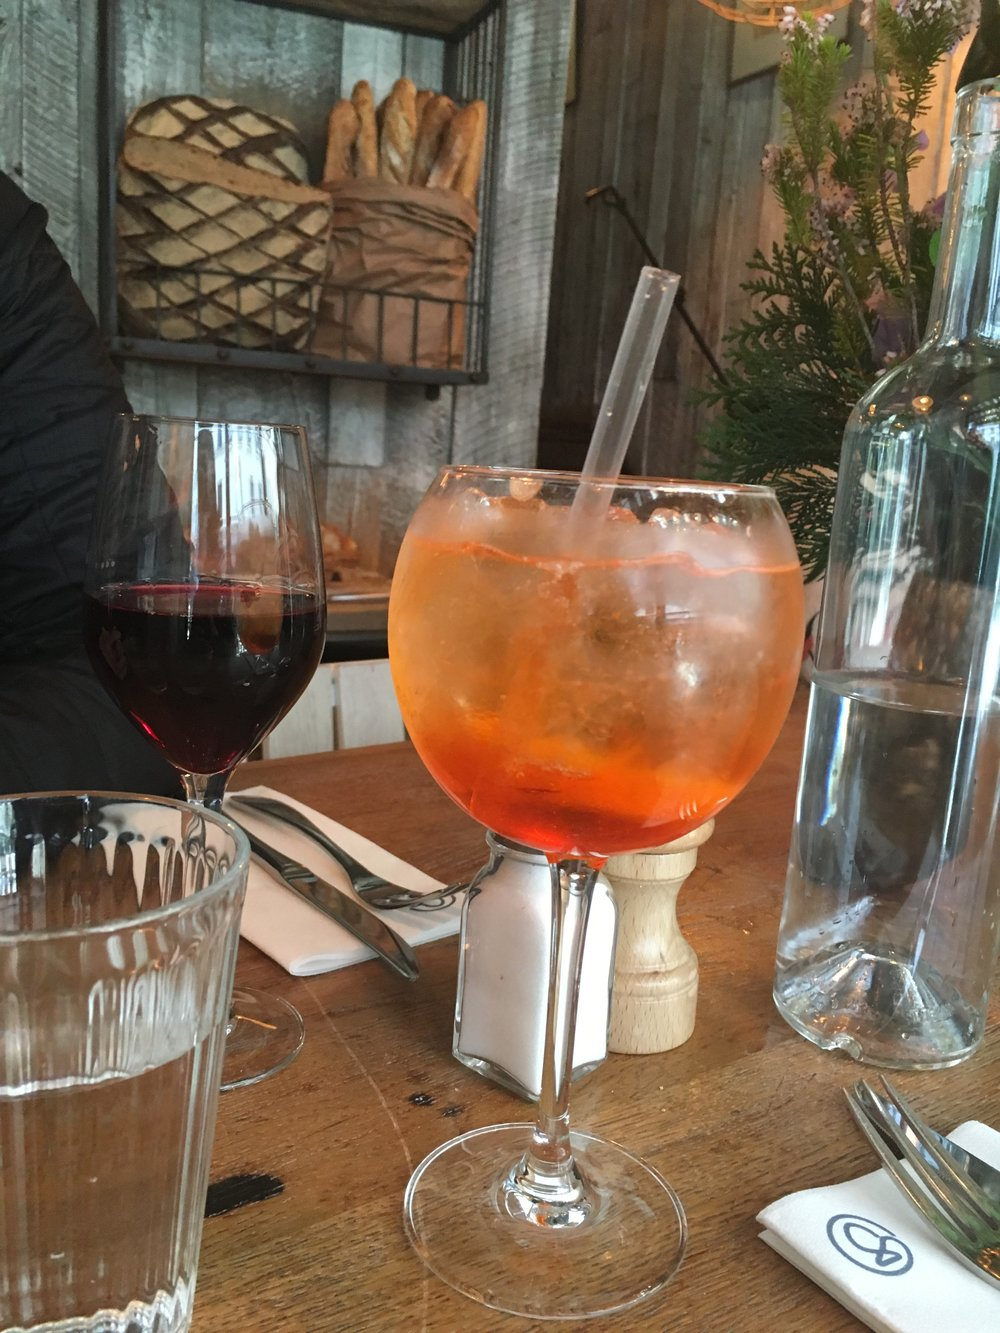 Are you really in Europe if you don't enjoy an Aperol Spritz?